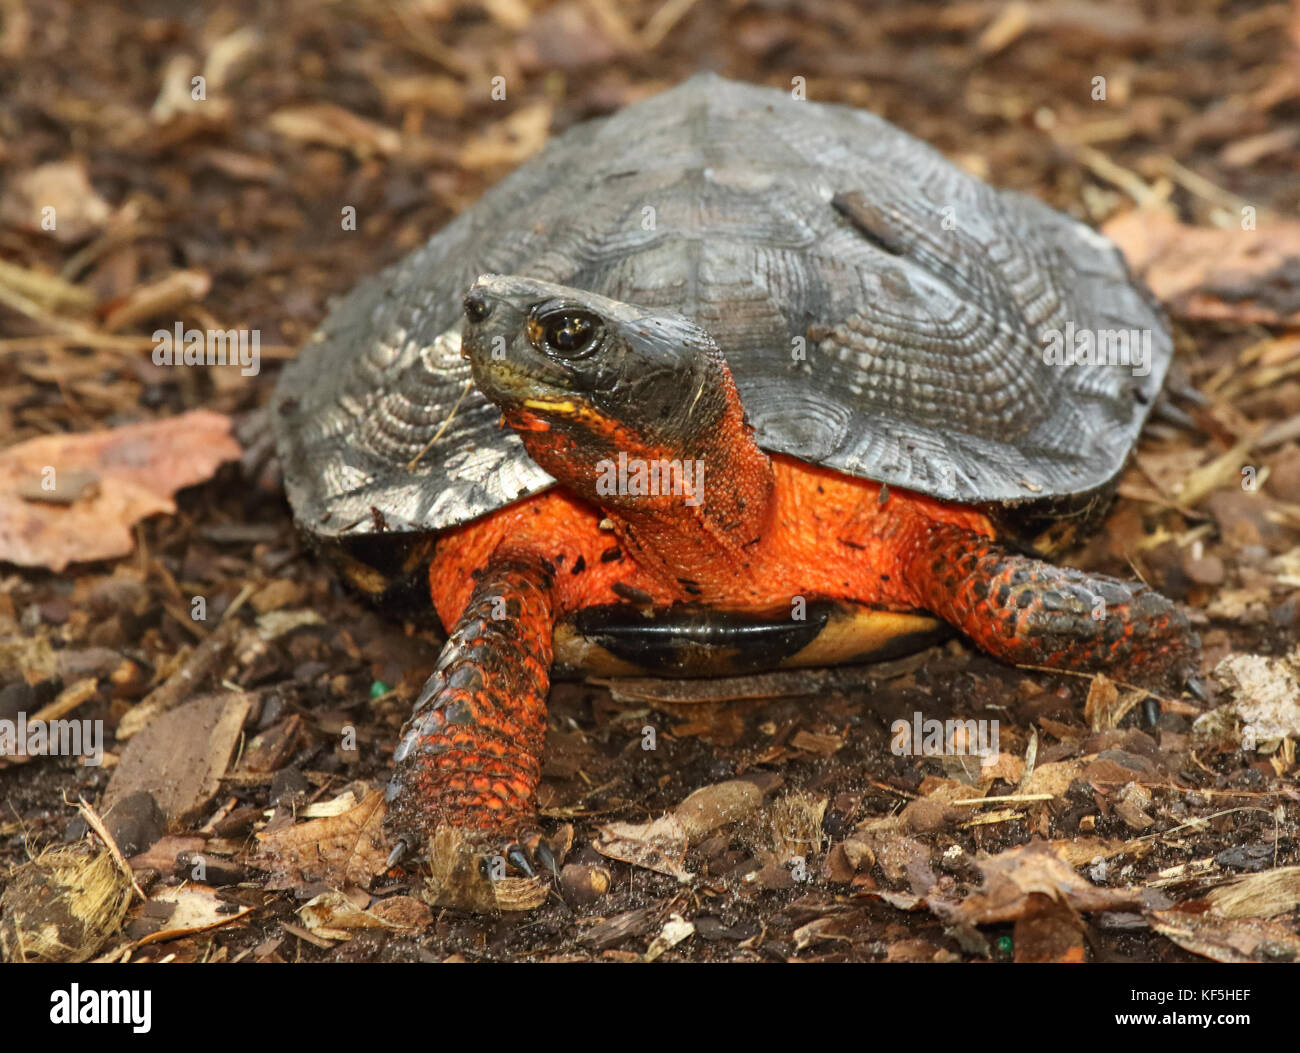 A Box Turtle pausing with its legs akimbo. - Stock Image